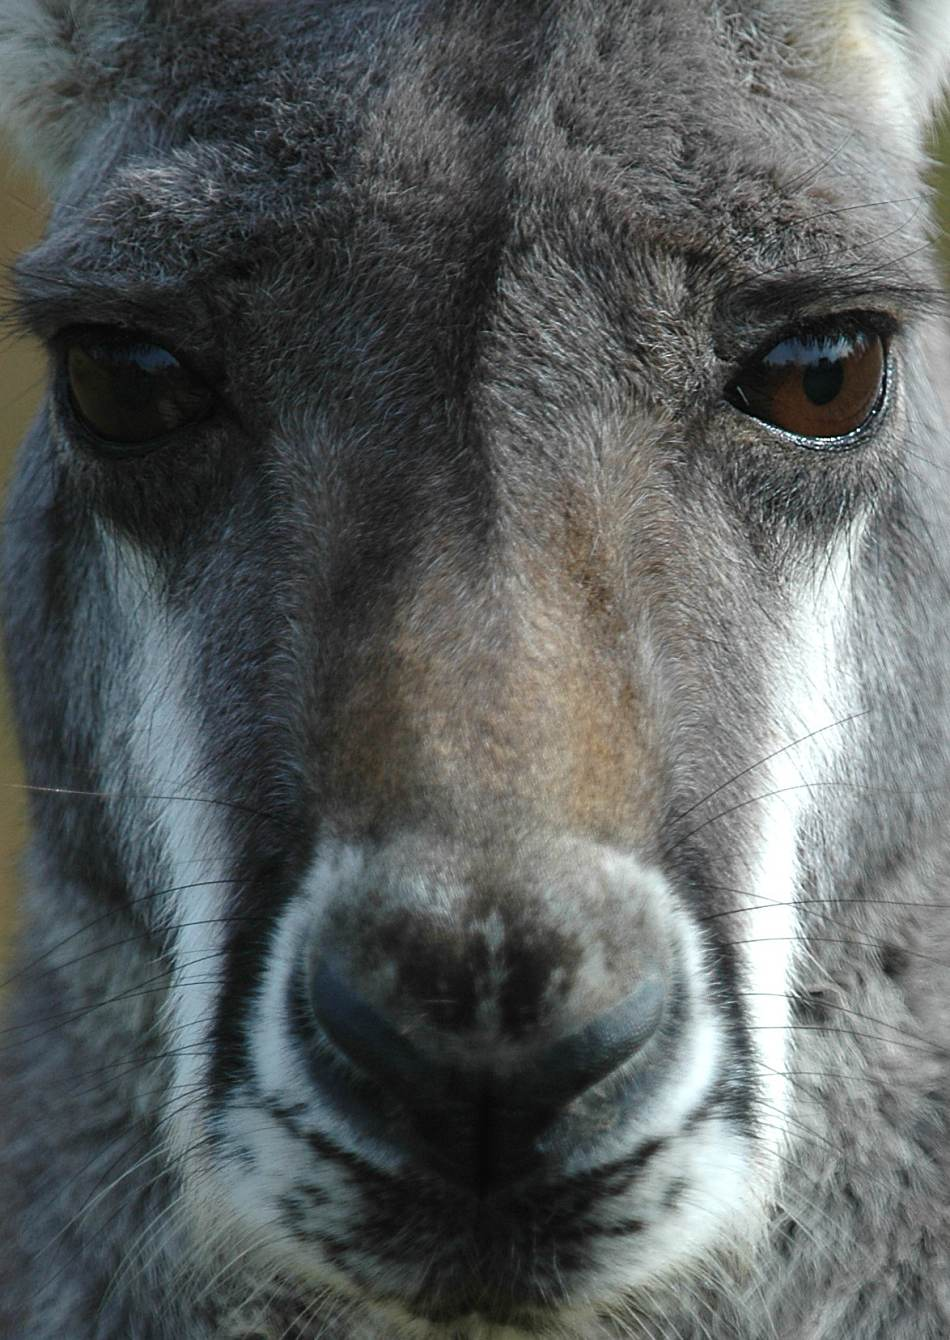 Animal Extreme Close-up - Kangaroo